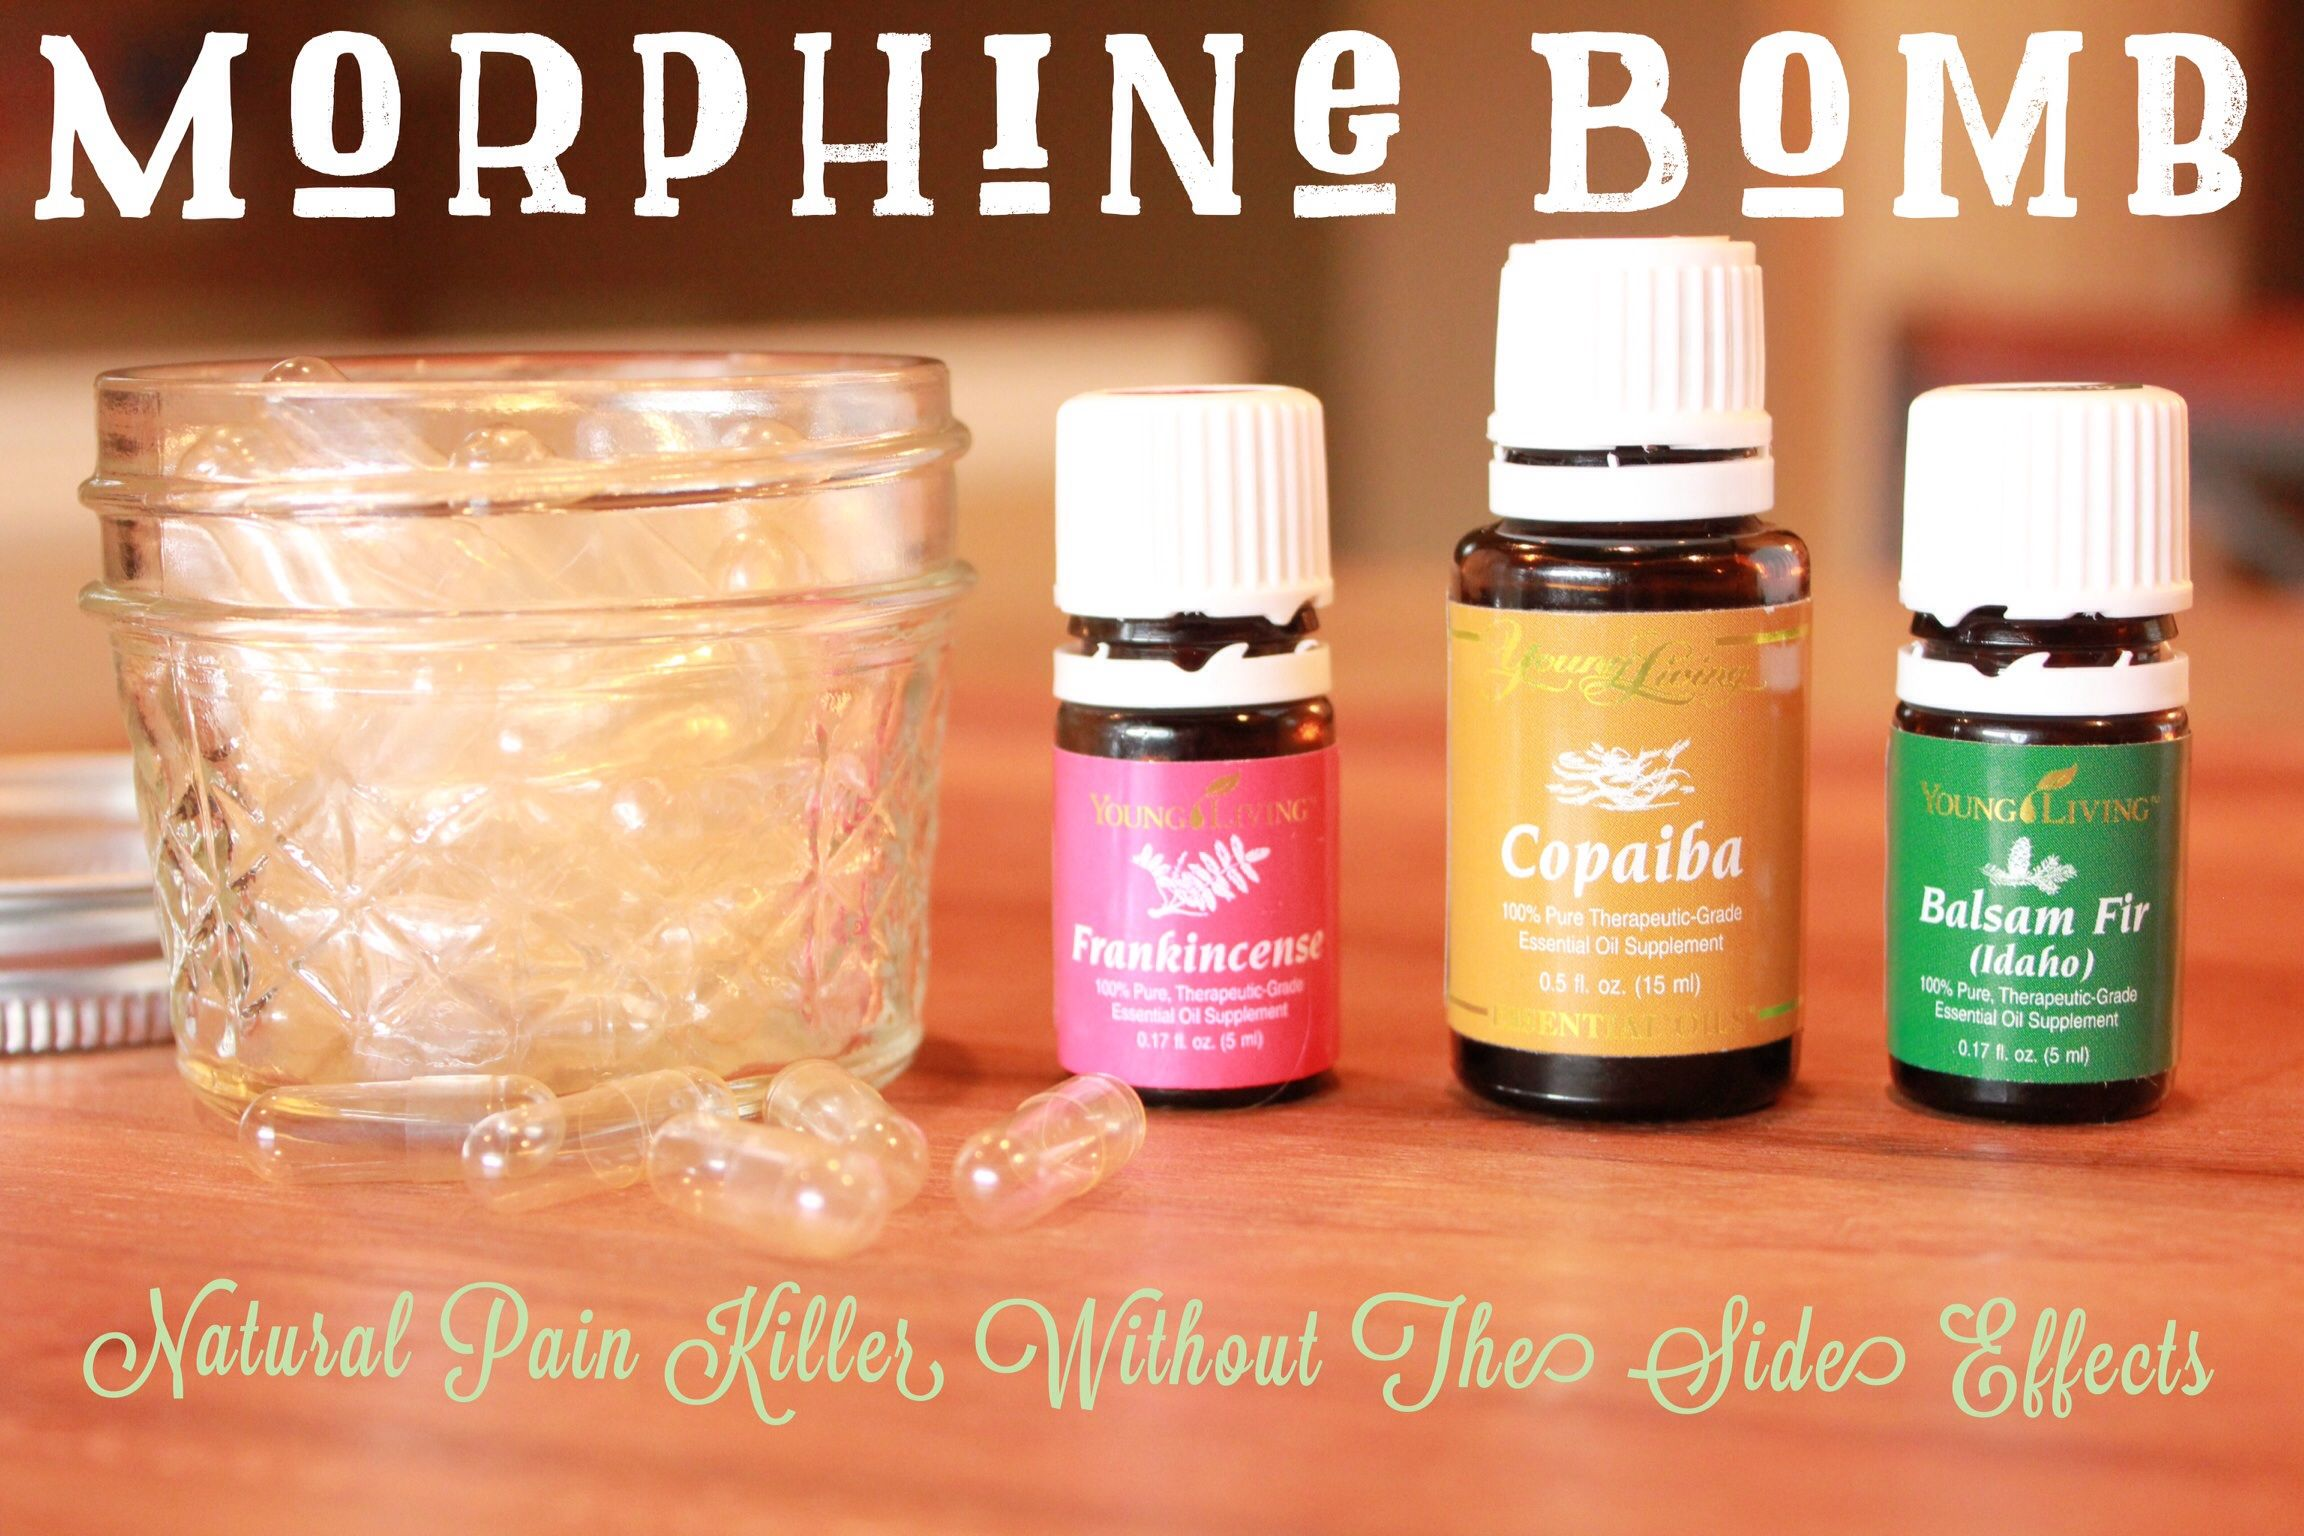 Morphine Bomb Natural Pain Relief Essential Oils